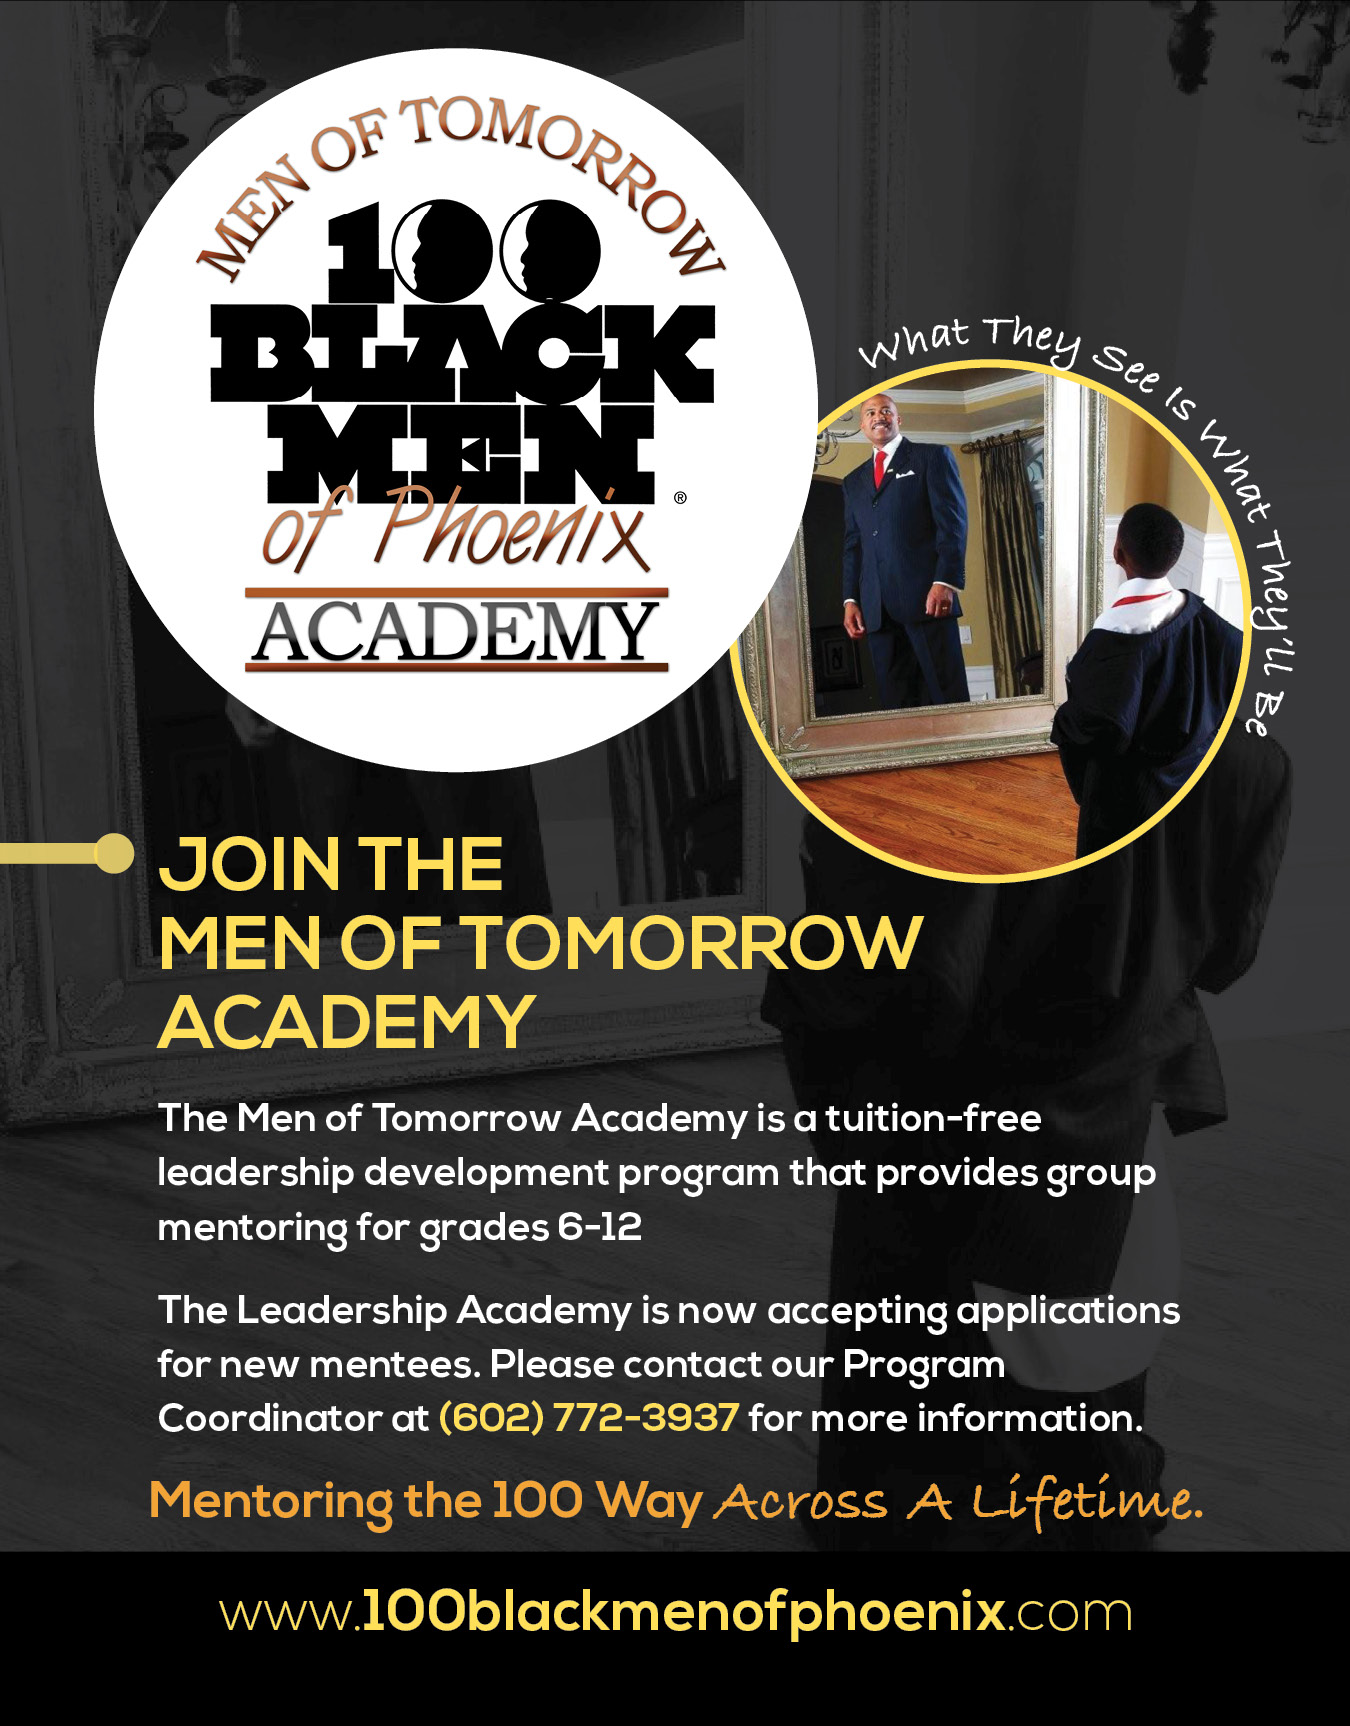 The Men of Tomorrow Academy is a tuition-free leadership development program that provides group mentoring for grades 6-12. The Leadership Academy is accepting applications for new mentees and can be reached at 6027723937.